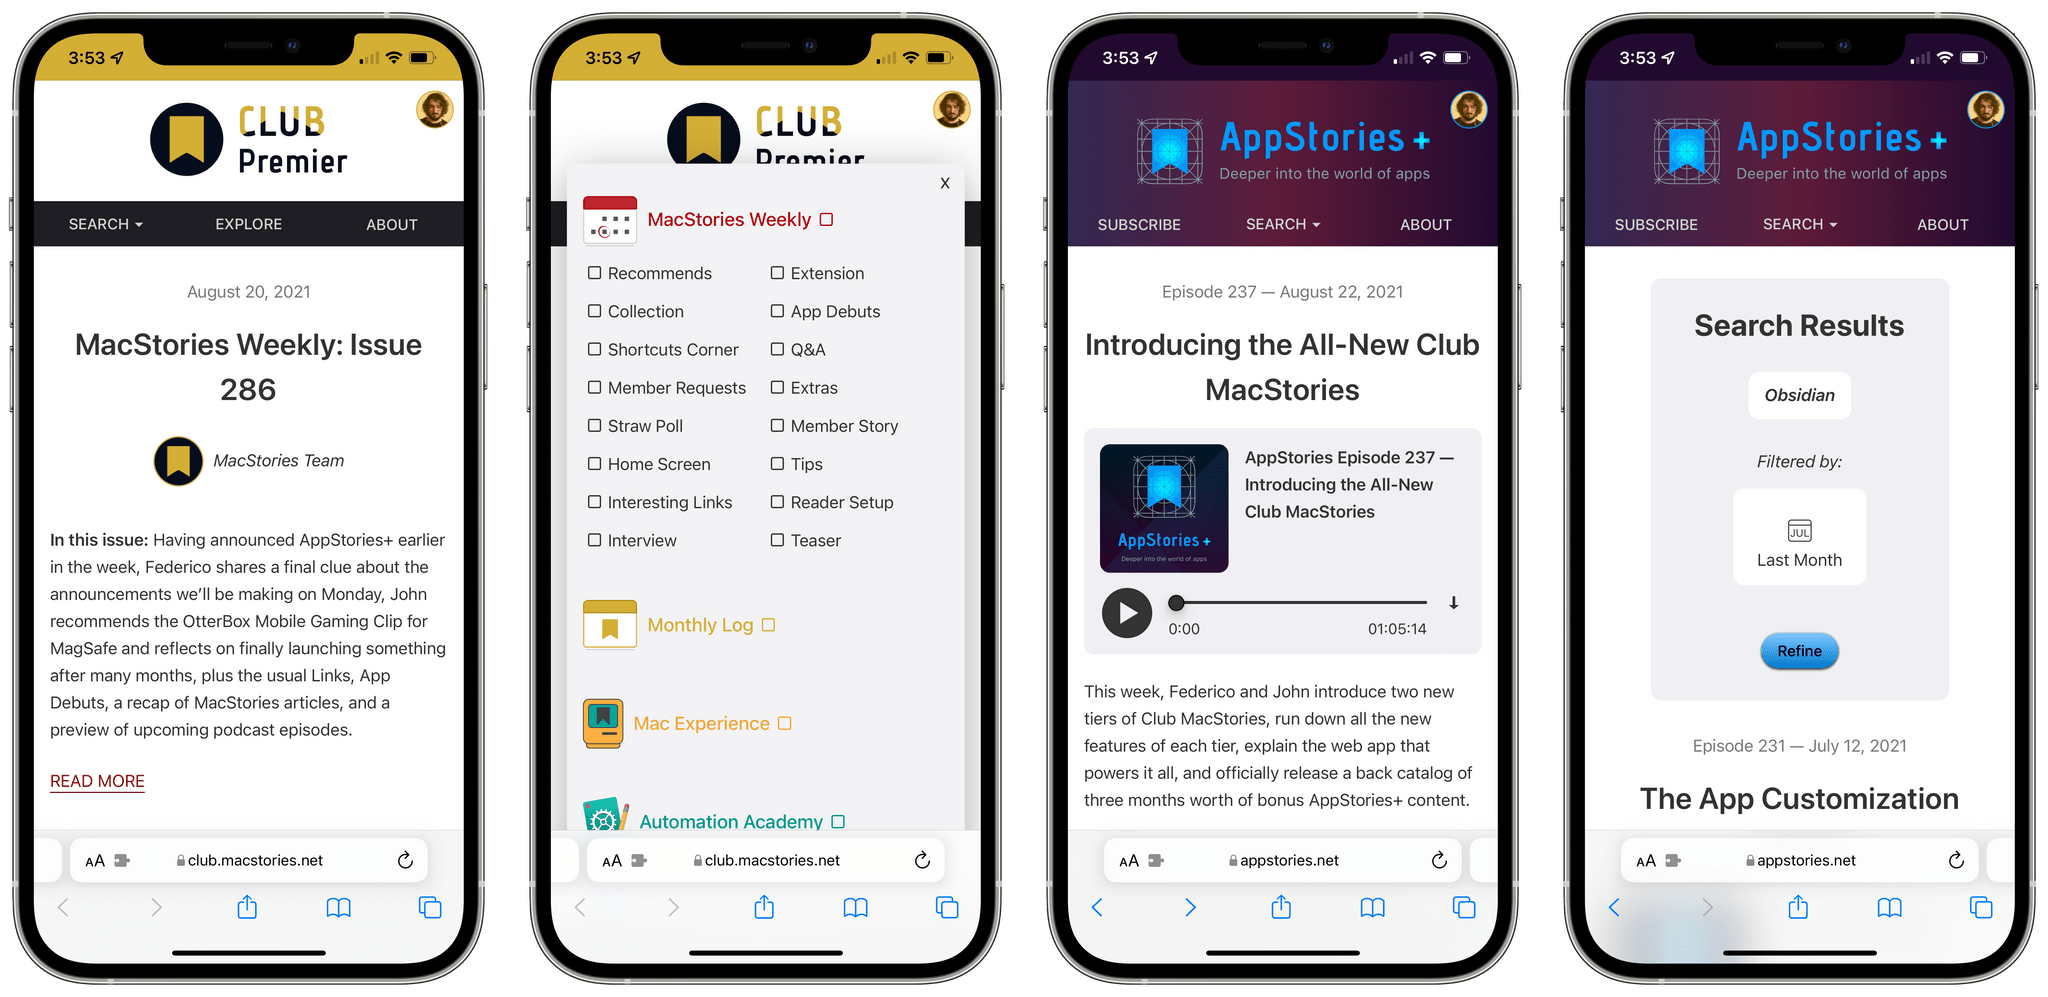 Our new web app for Club MacStories and AppStories, Calliope.